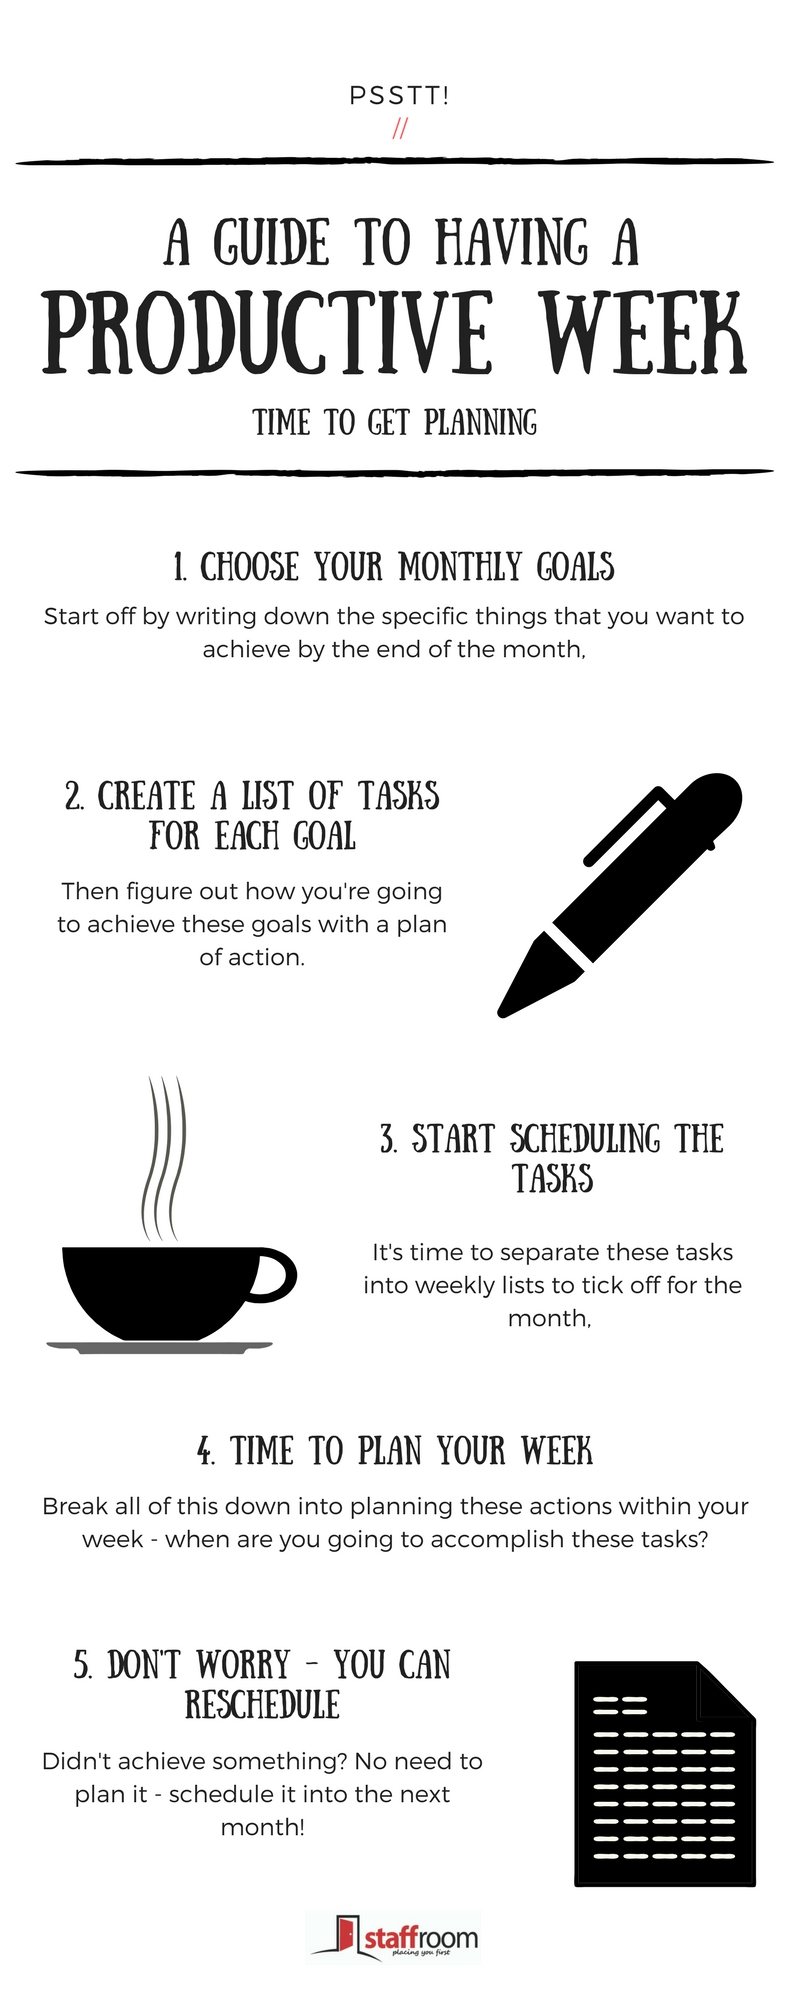 HOW TO MAKE SURE YOUR WEEK IS PRODUCTIVE